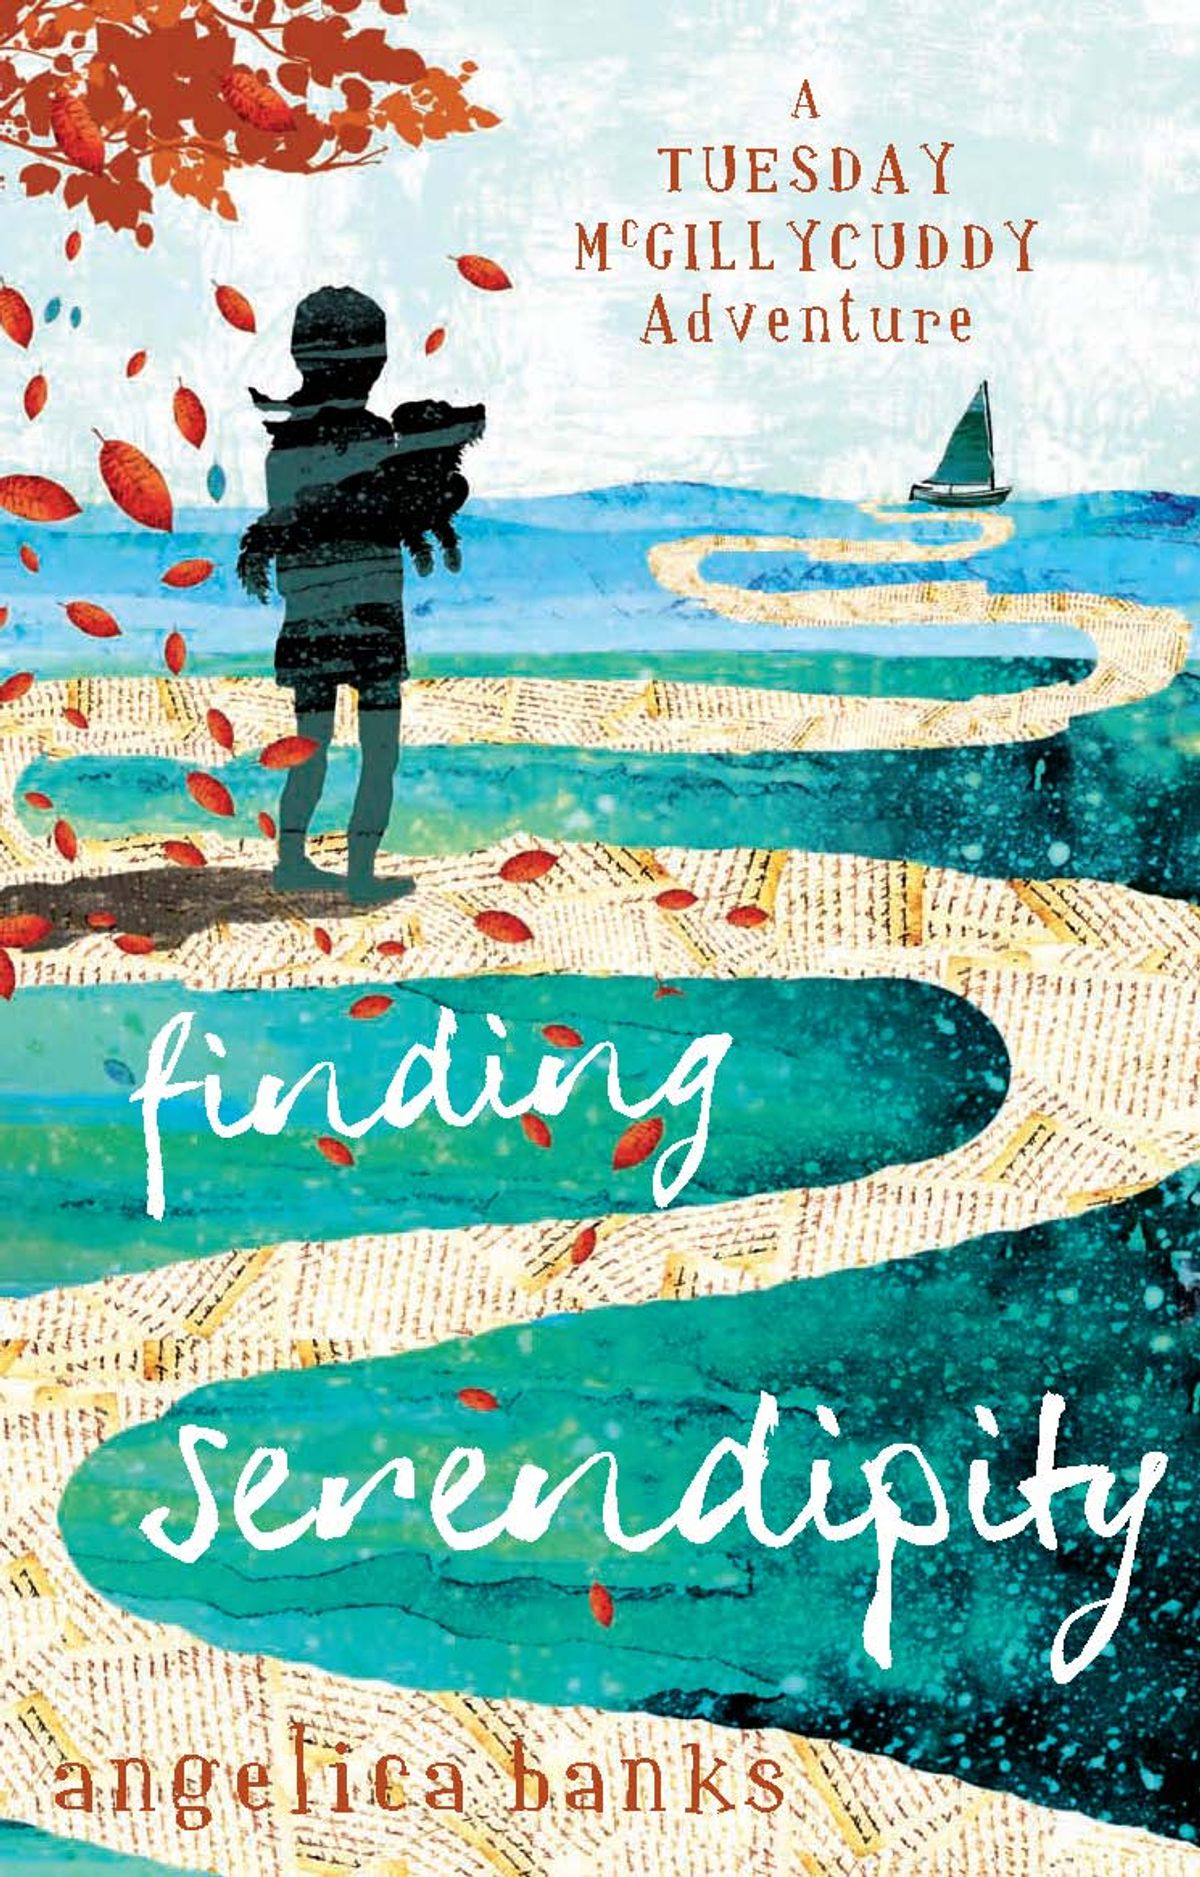 Finding Serendipity